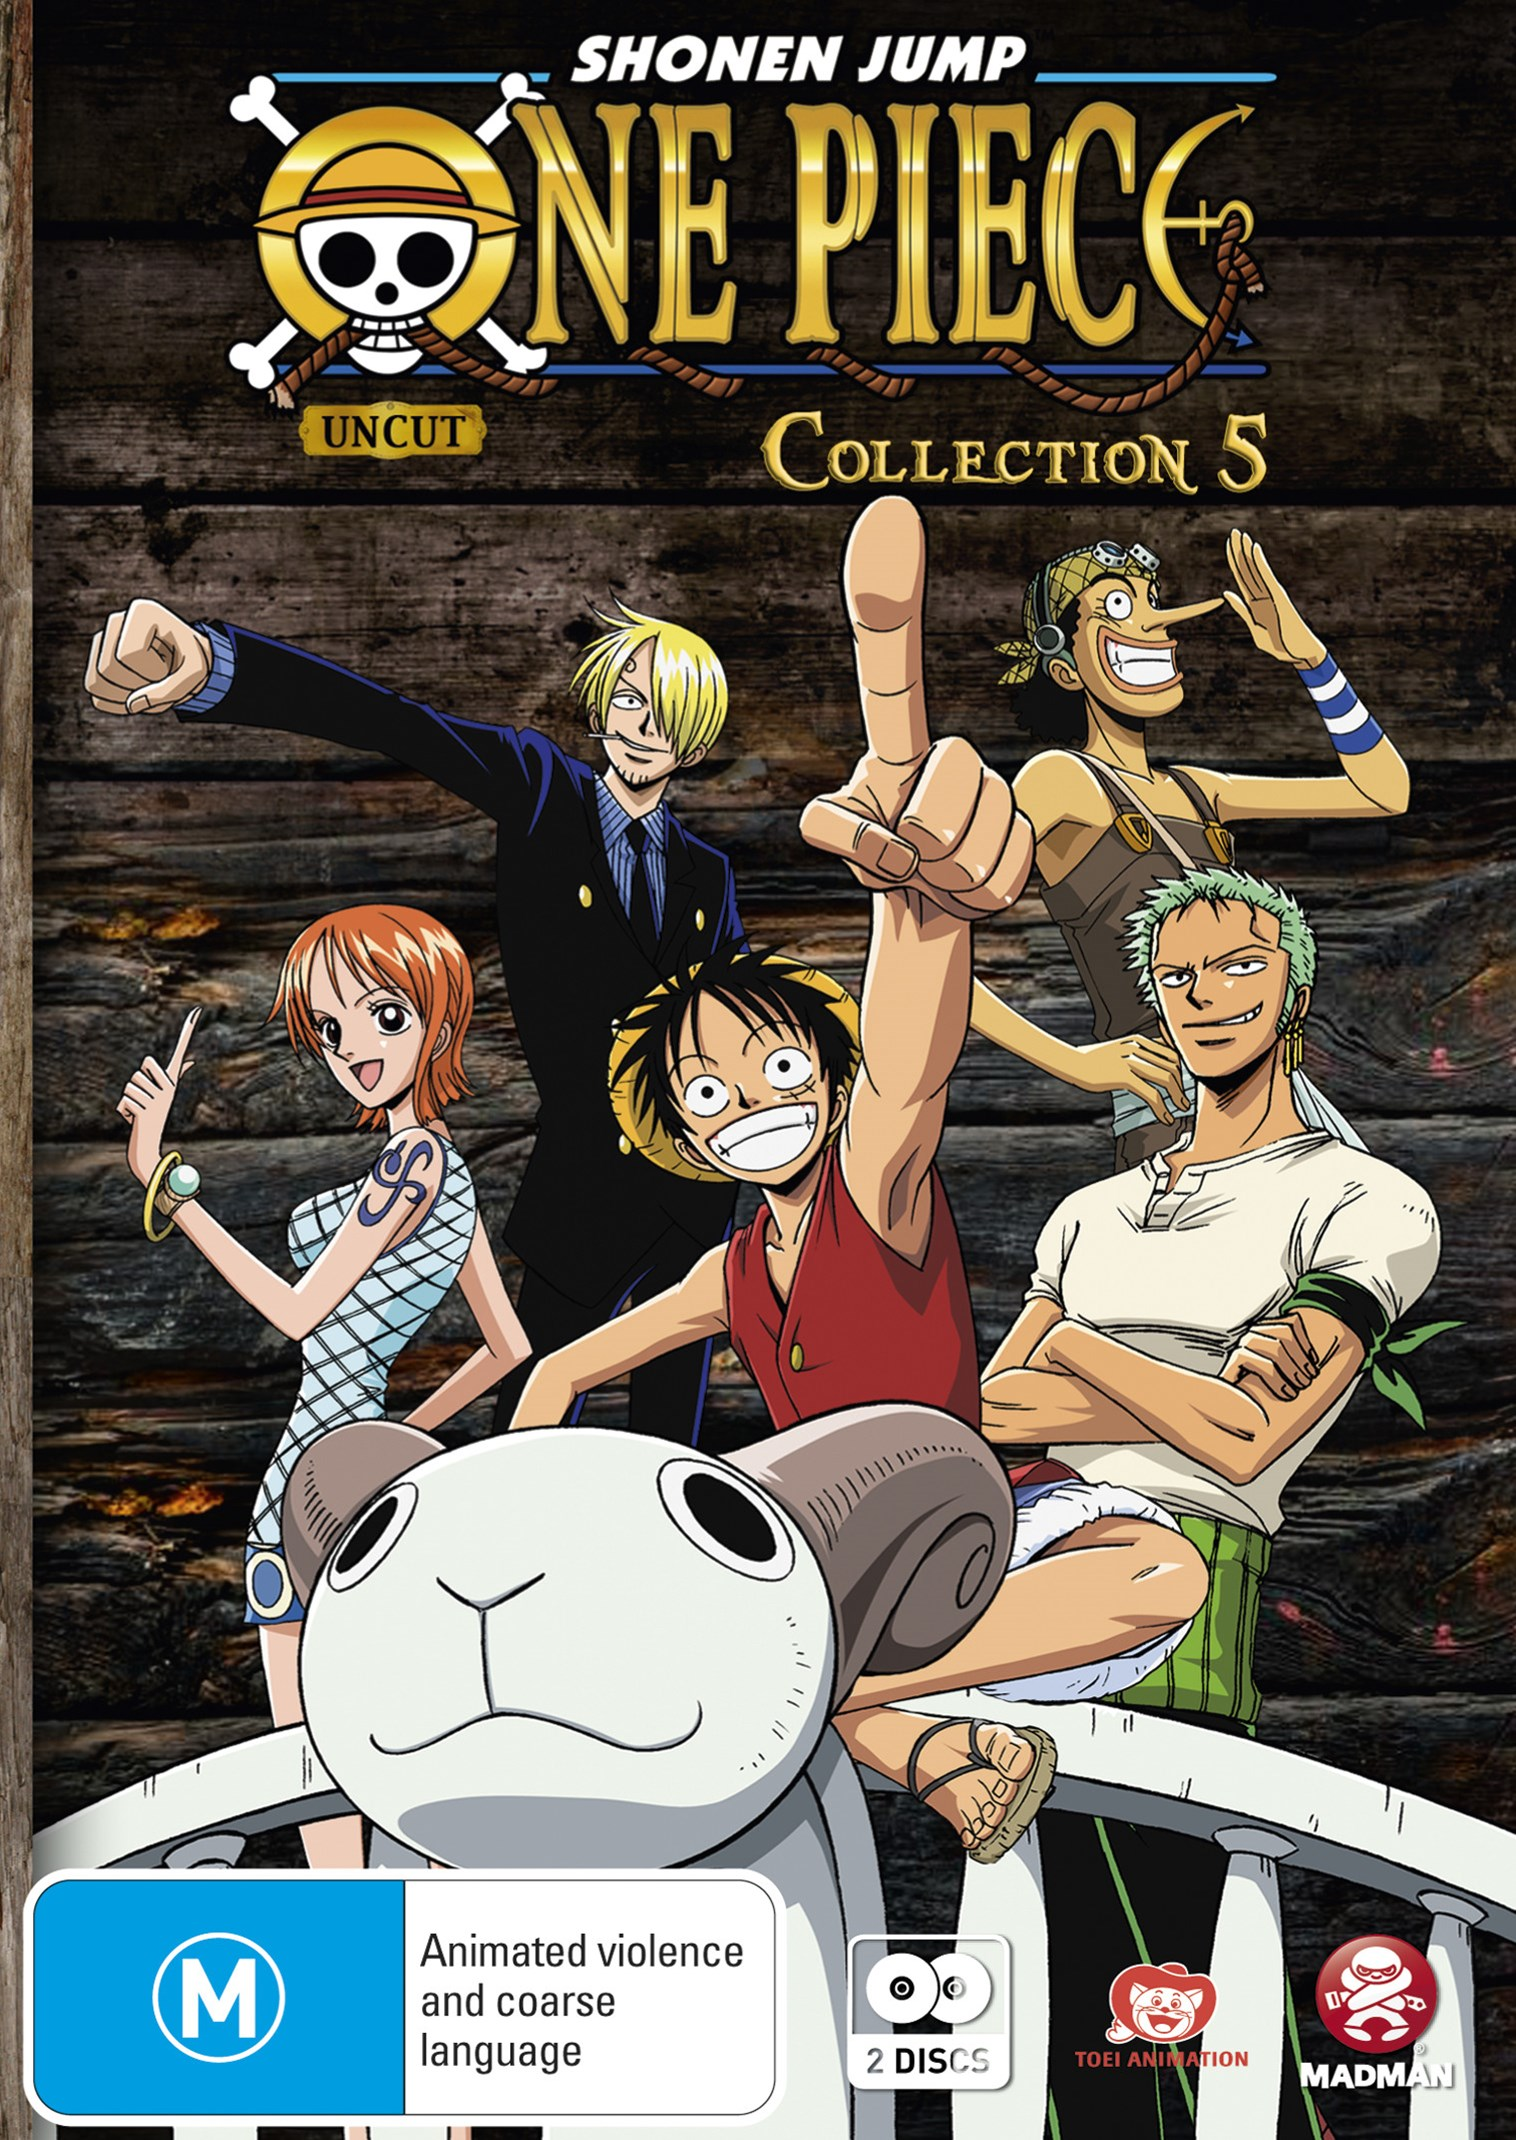 One Piece (Uncut) Collection 5 (Eps 54-66)